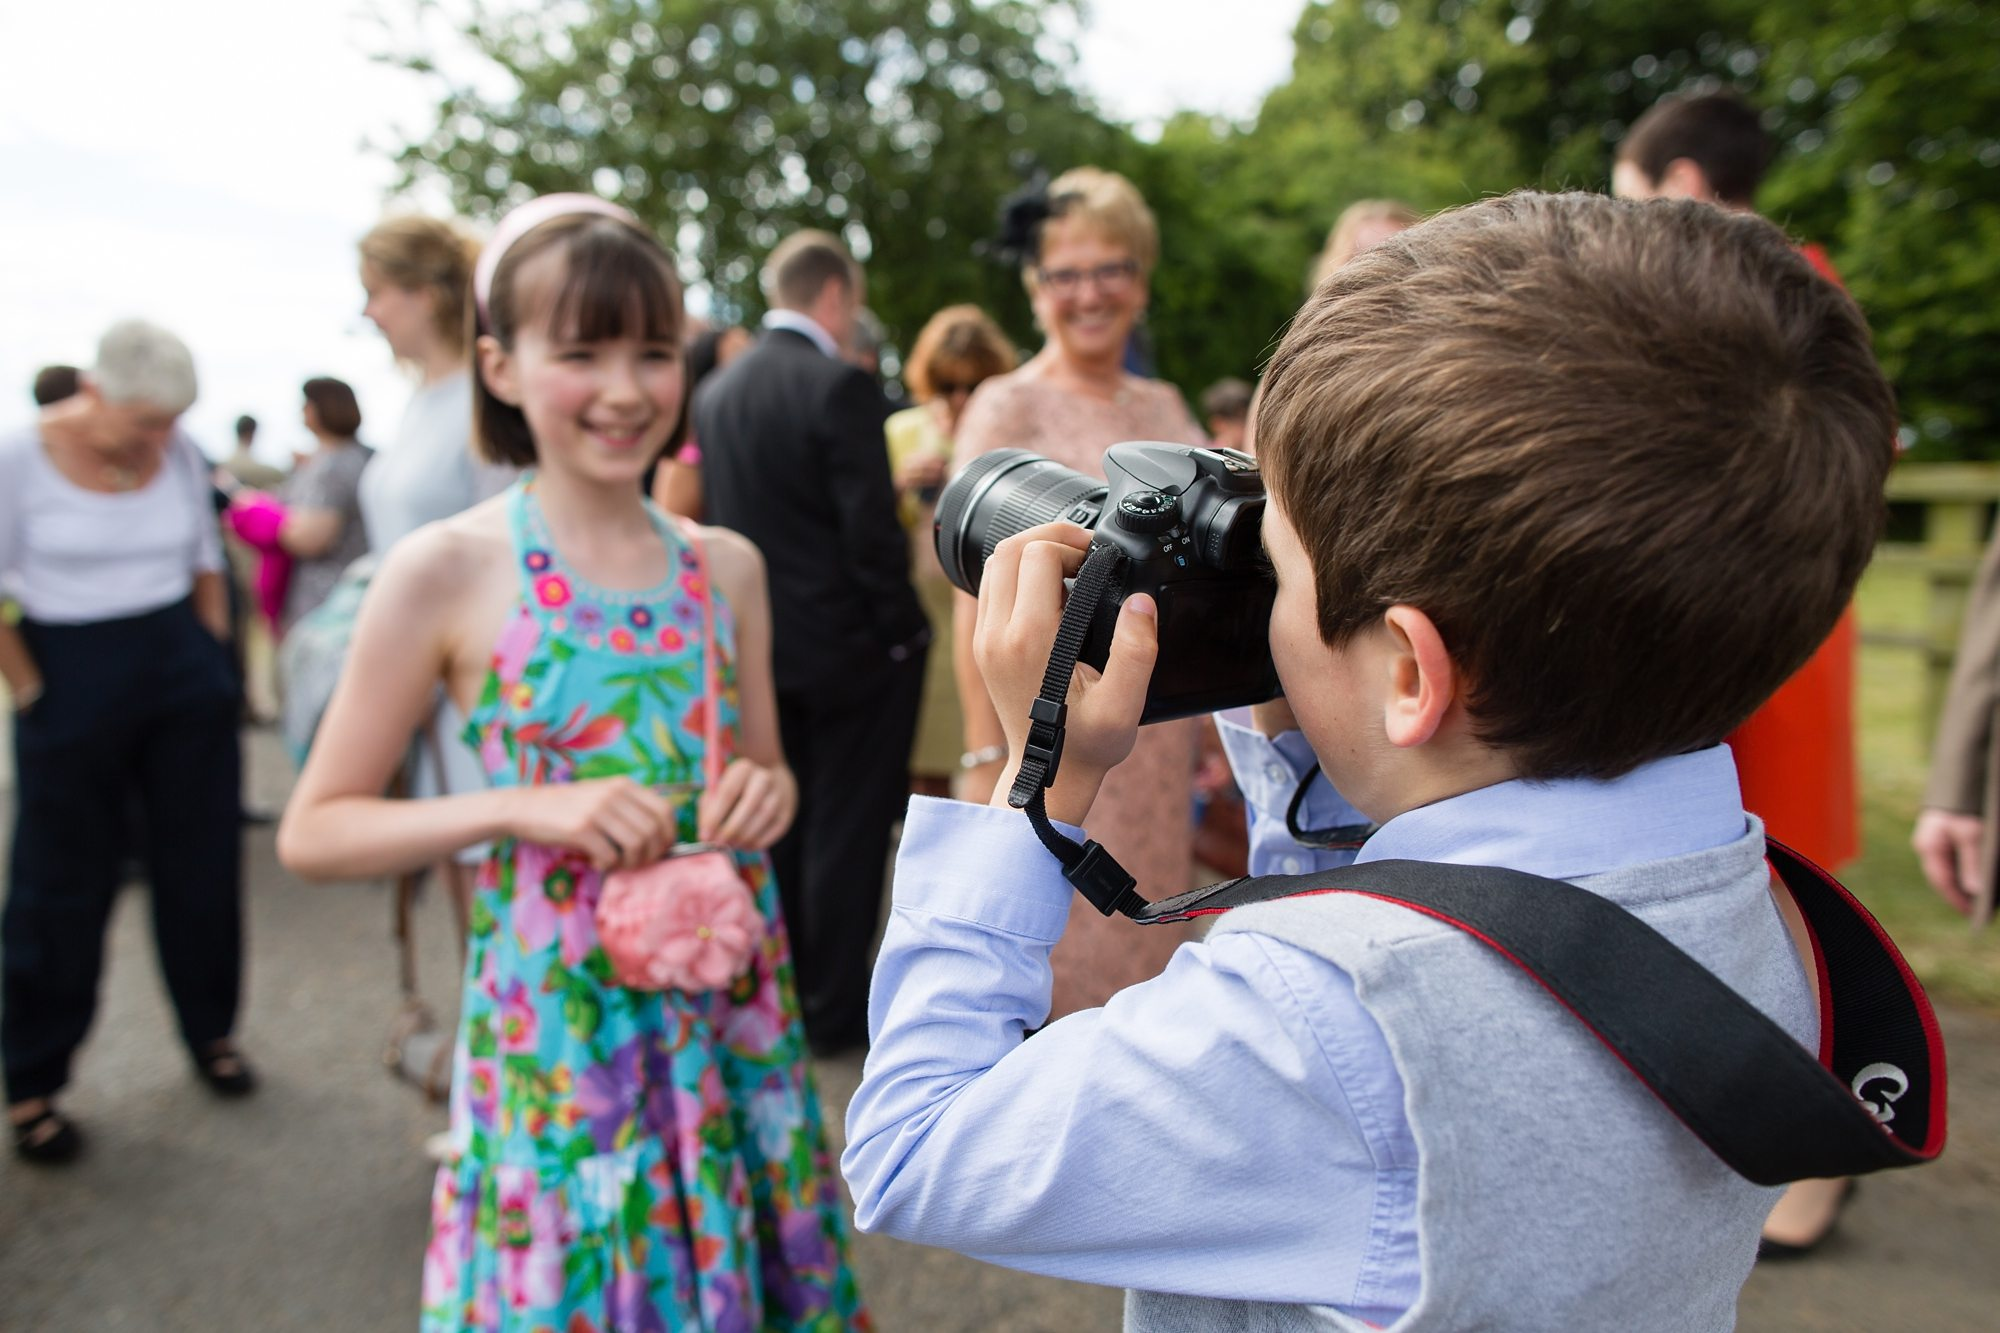 little boy holding camera and taking picture of little girl